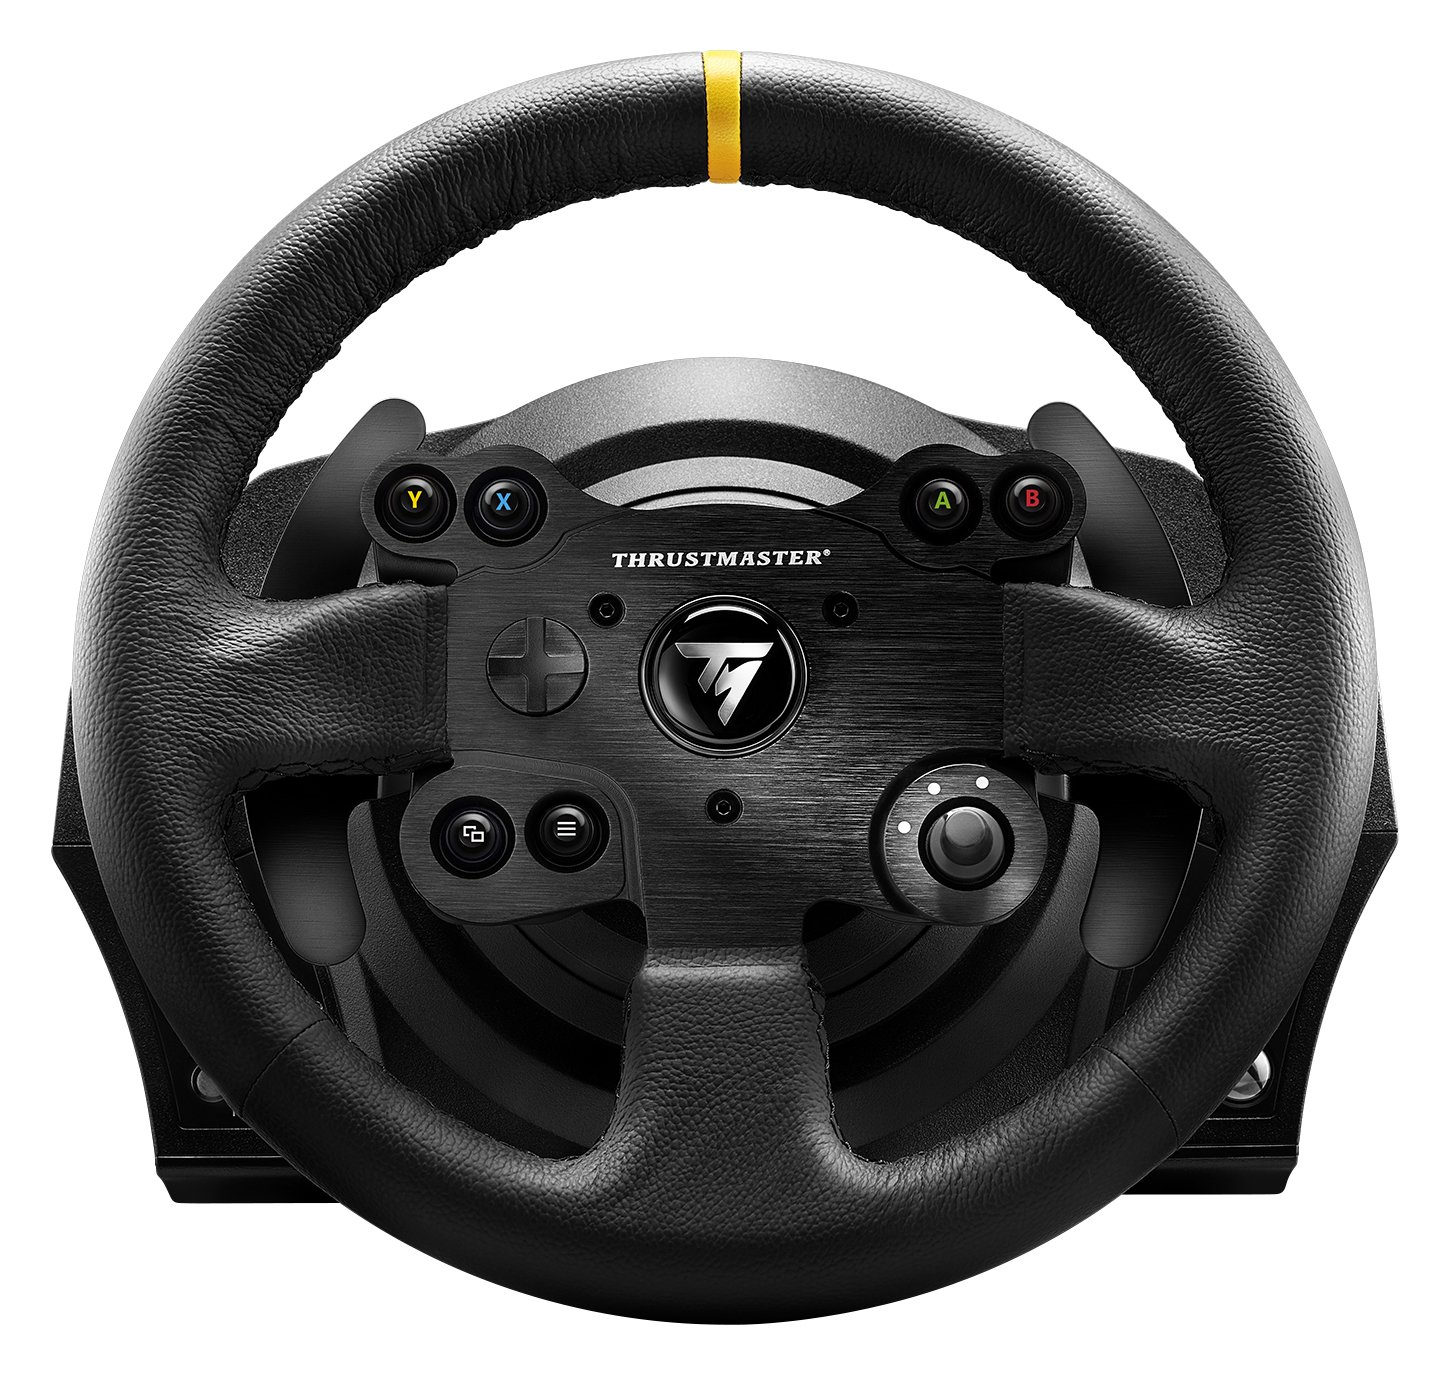 Thrustmaster TX RACING WHEEL LEATHER EDITION - Volante - XboxOne / PC -Force Feedback - 3 pedales - Licencia Oficial...